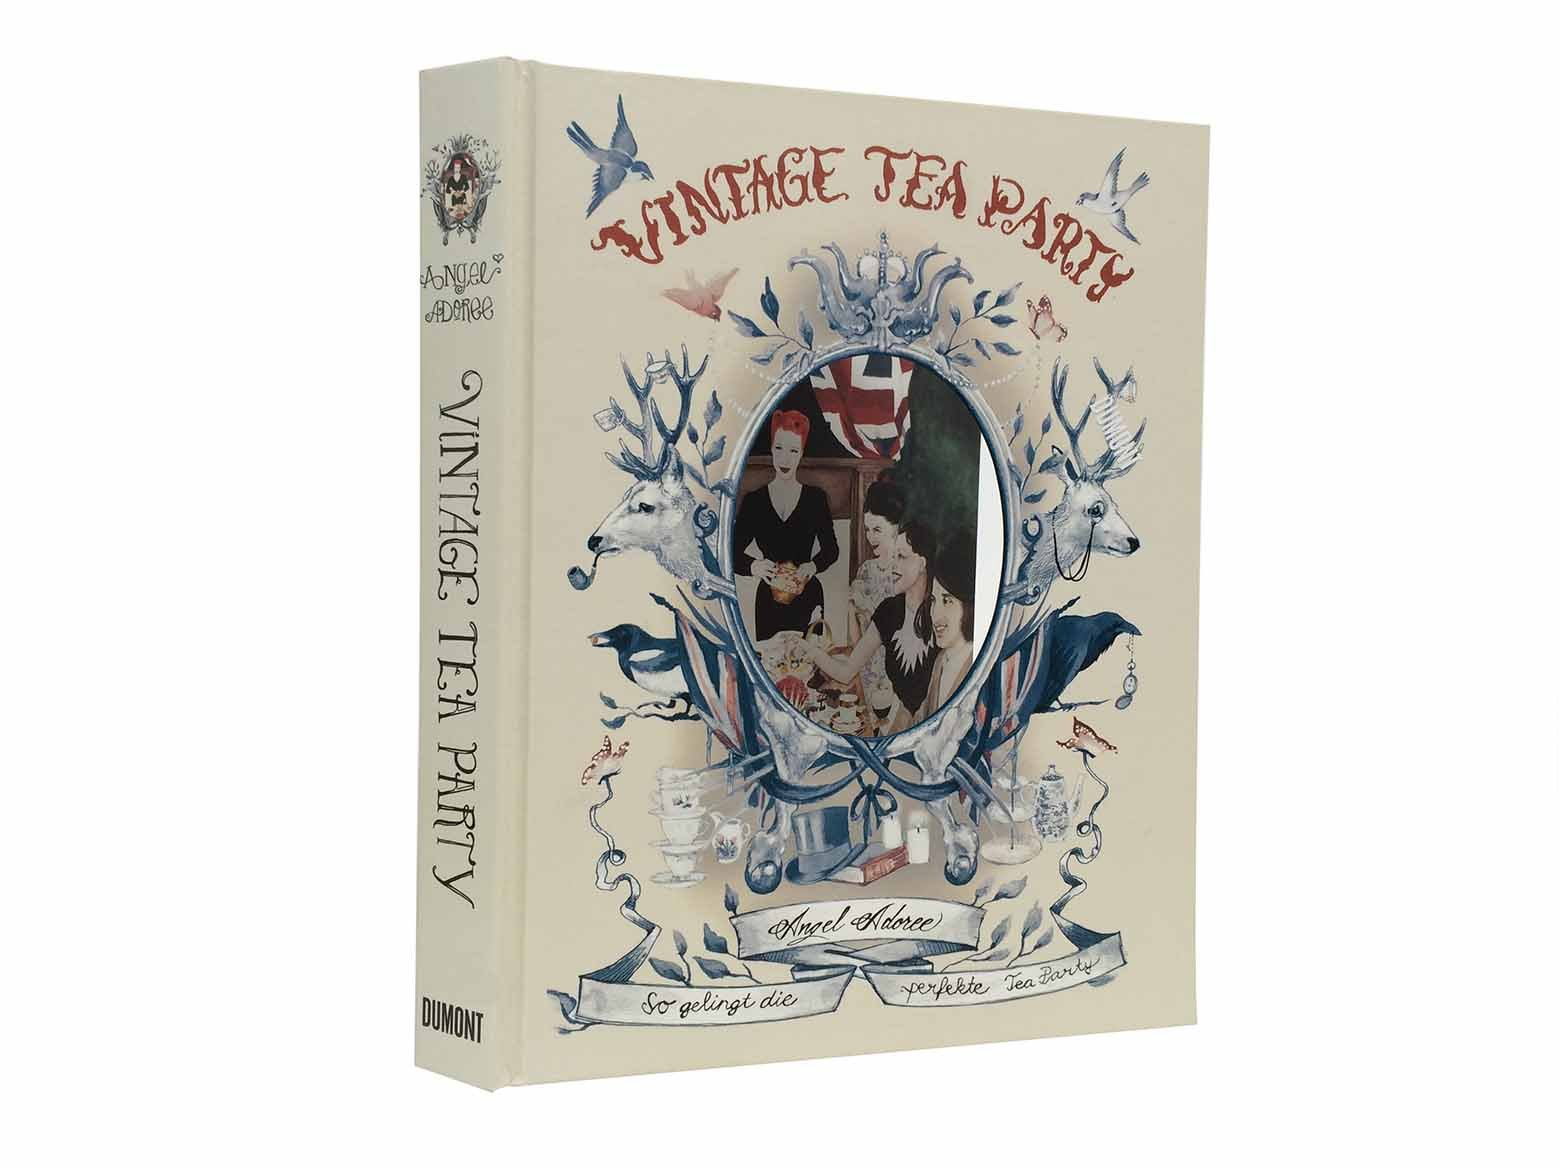 Vintage Tea Party: So gelingt die perfekte Tea Party: Amazon.de ...